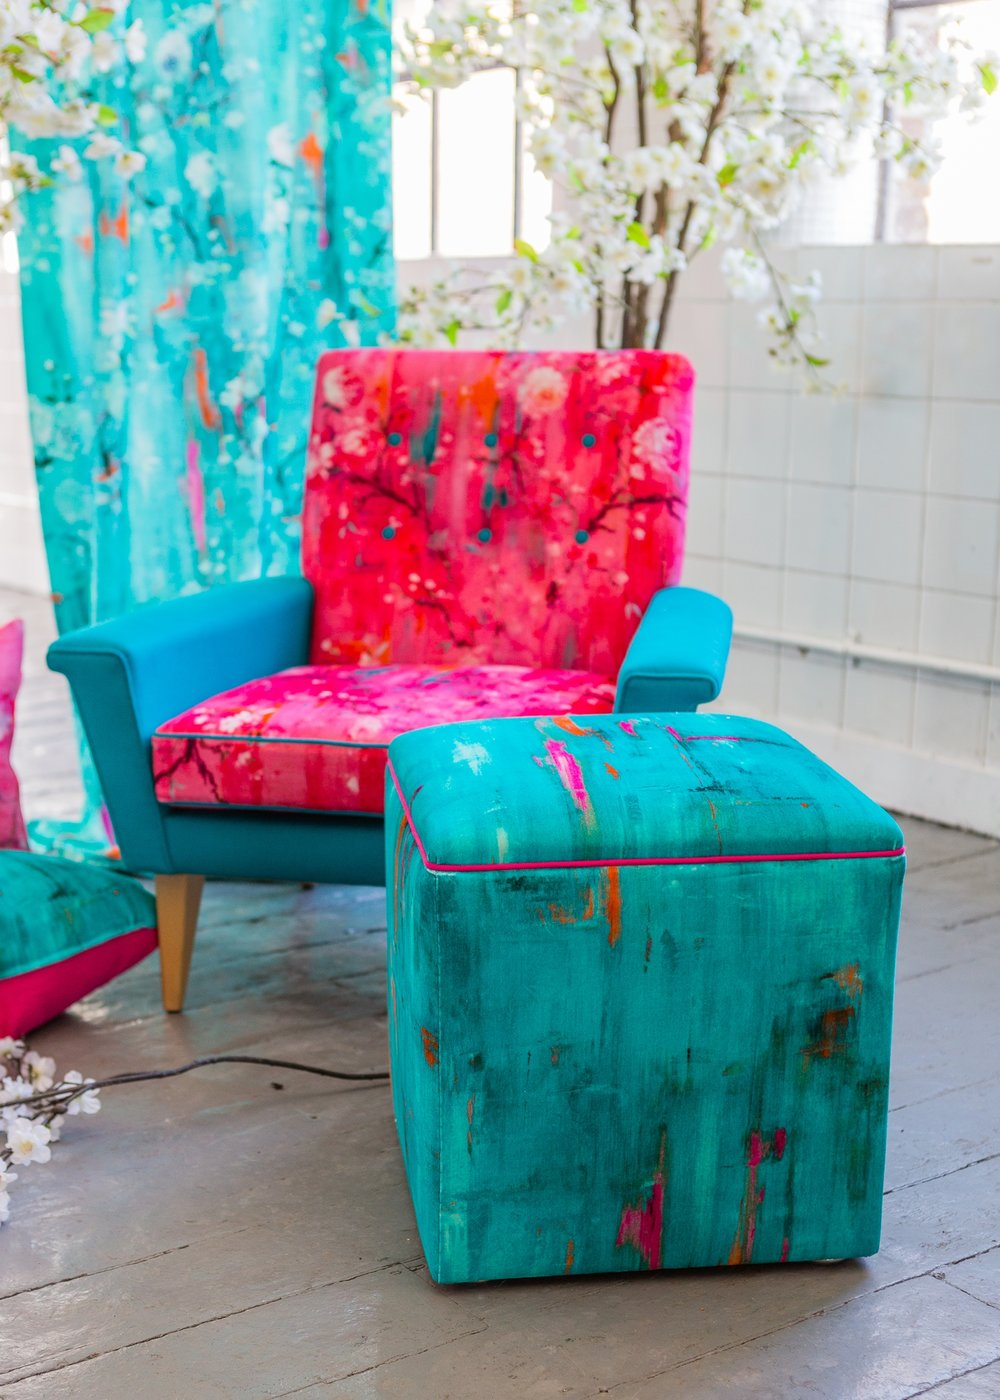 Chair and stool in 'Perfumes of the Night' - Abstract and Floral editions